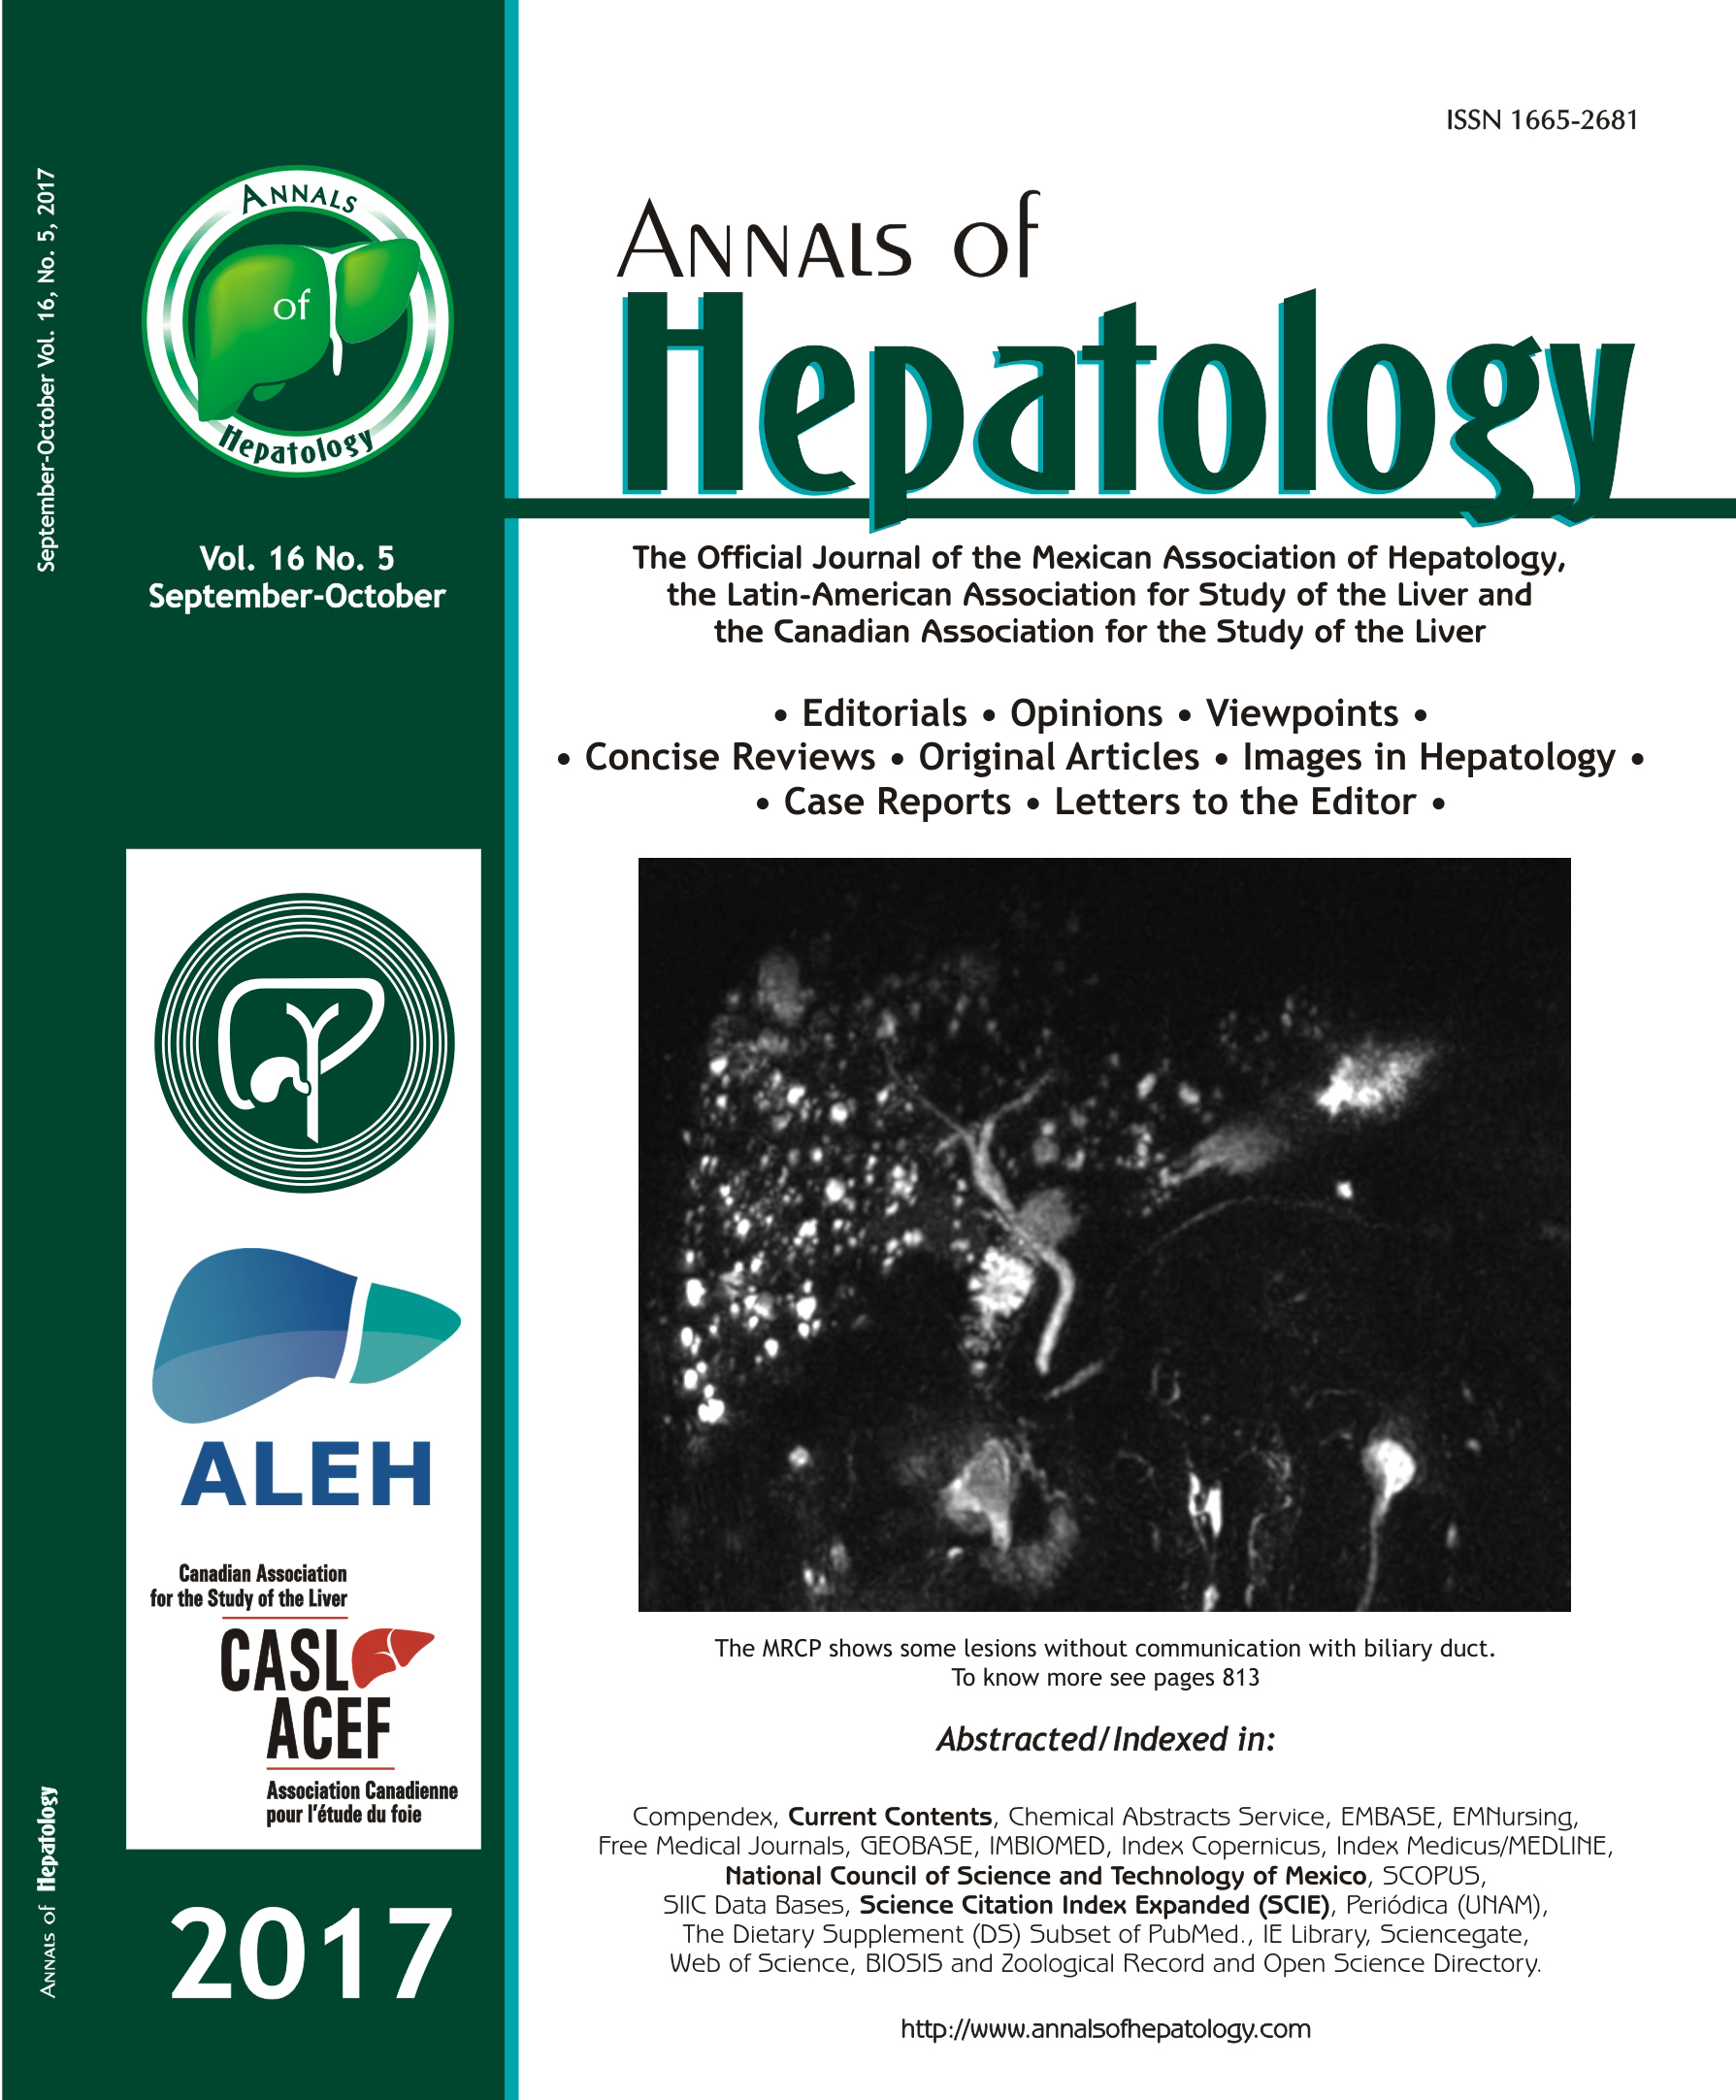 Annals of Hepatology